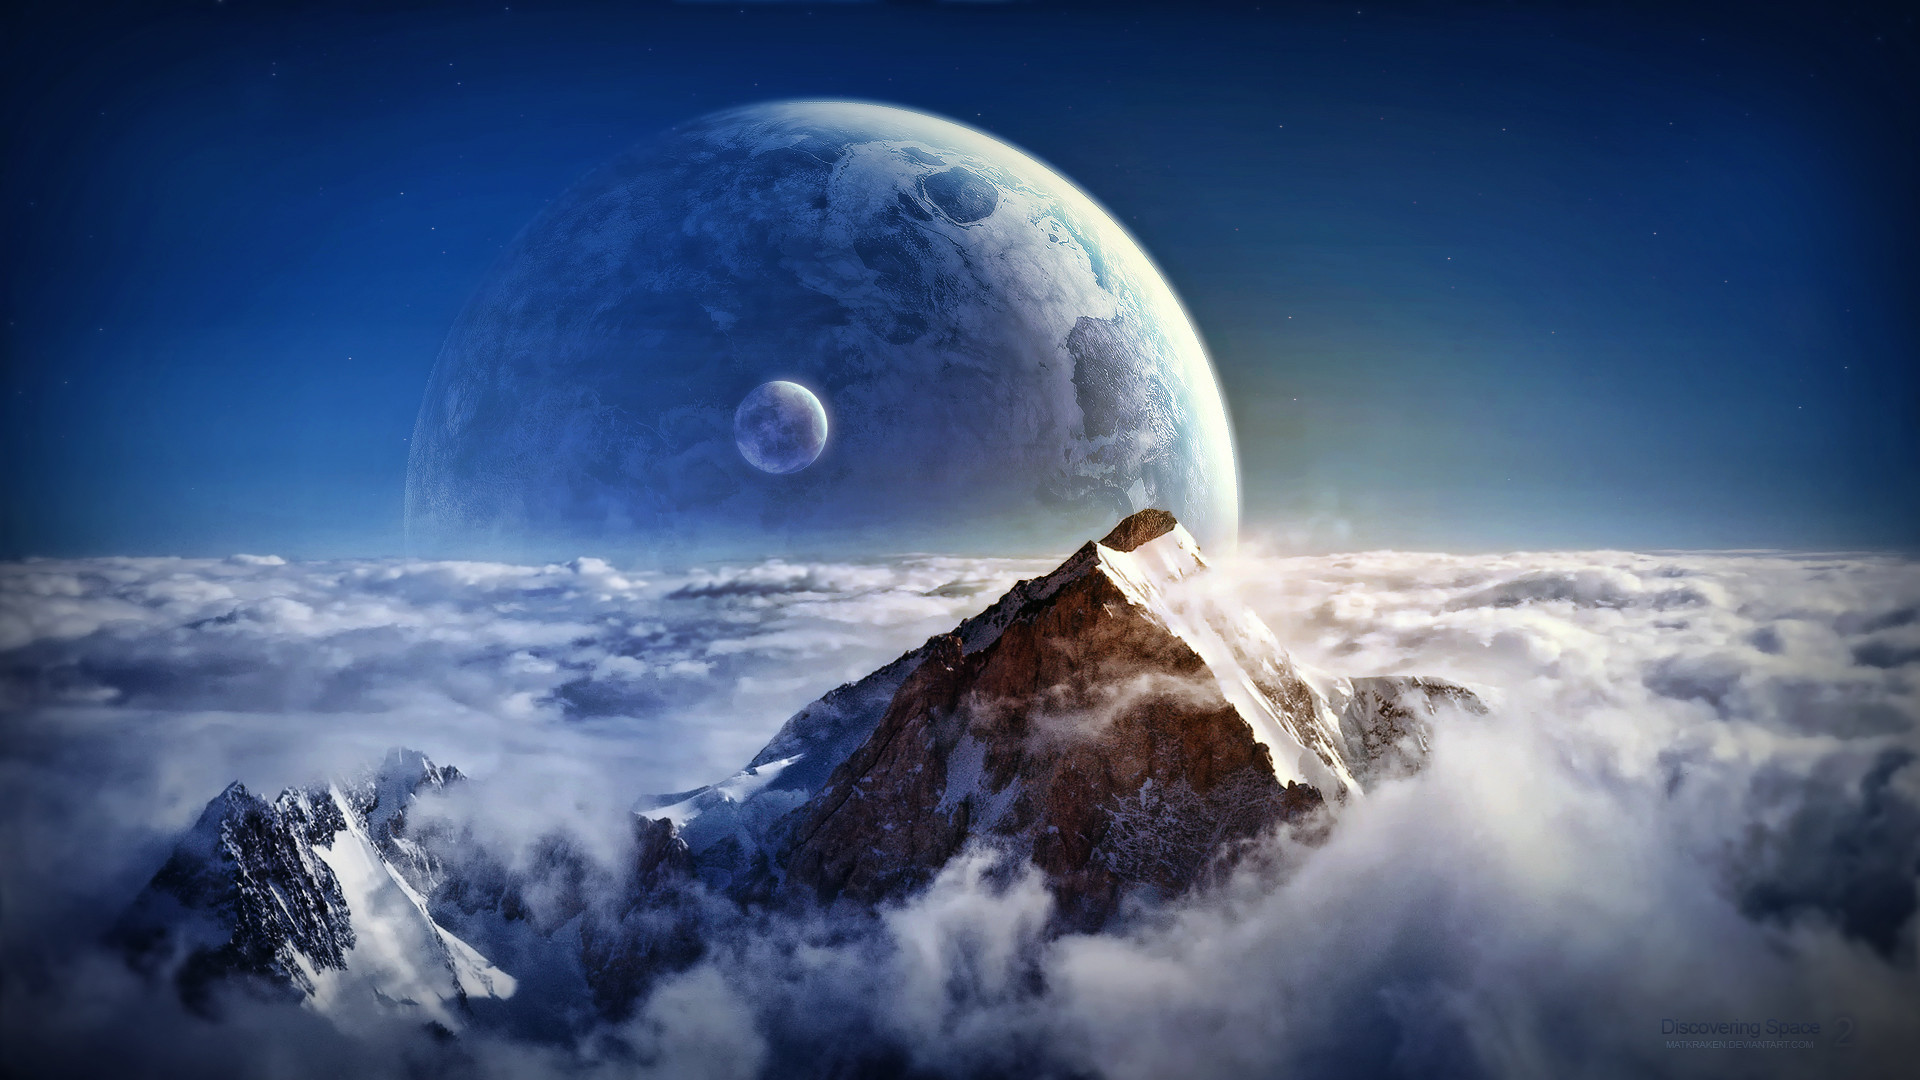 fantasy wallpaper and backgrounds   Best Fantasy Places HD Wallpapers    awesome wallpaper and screensavers part 2 – digital (mostly)   Pinterest    Fantasy …